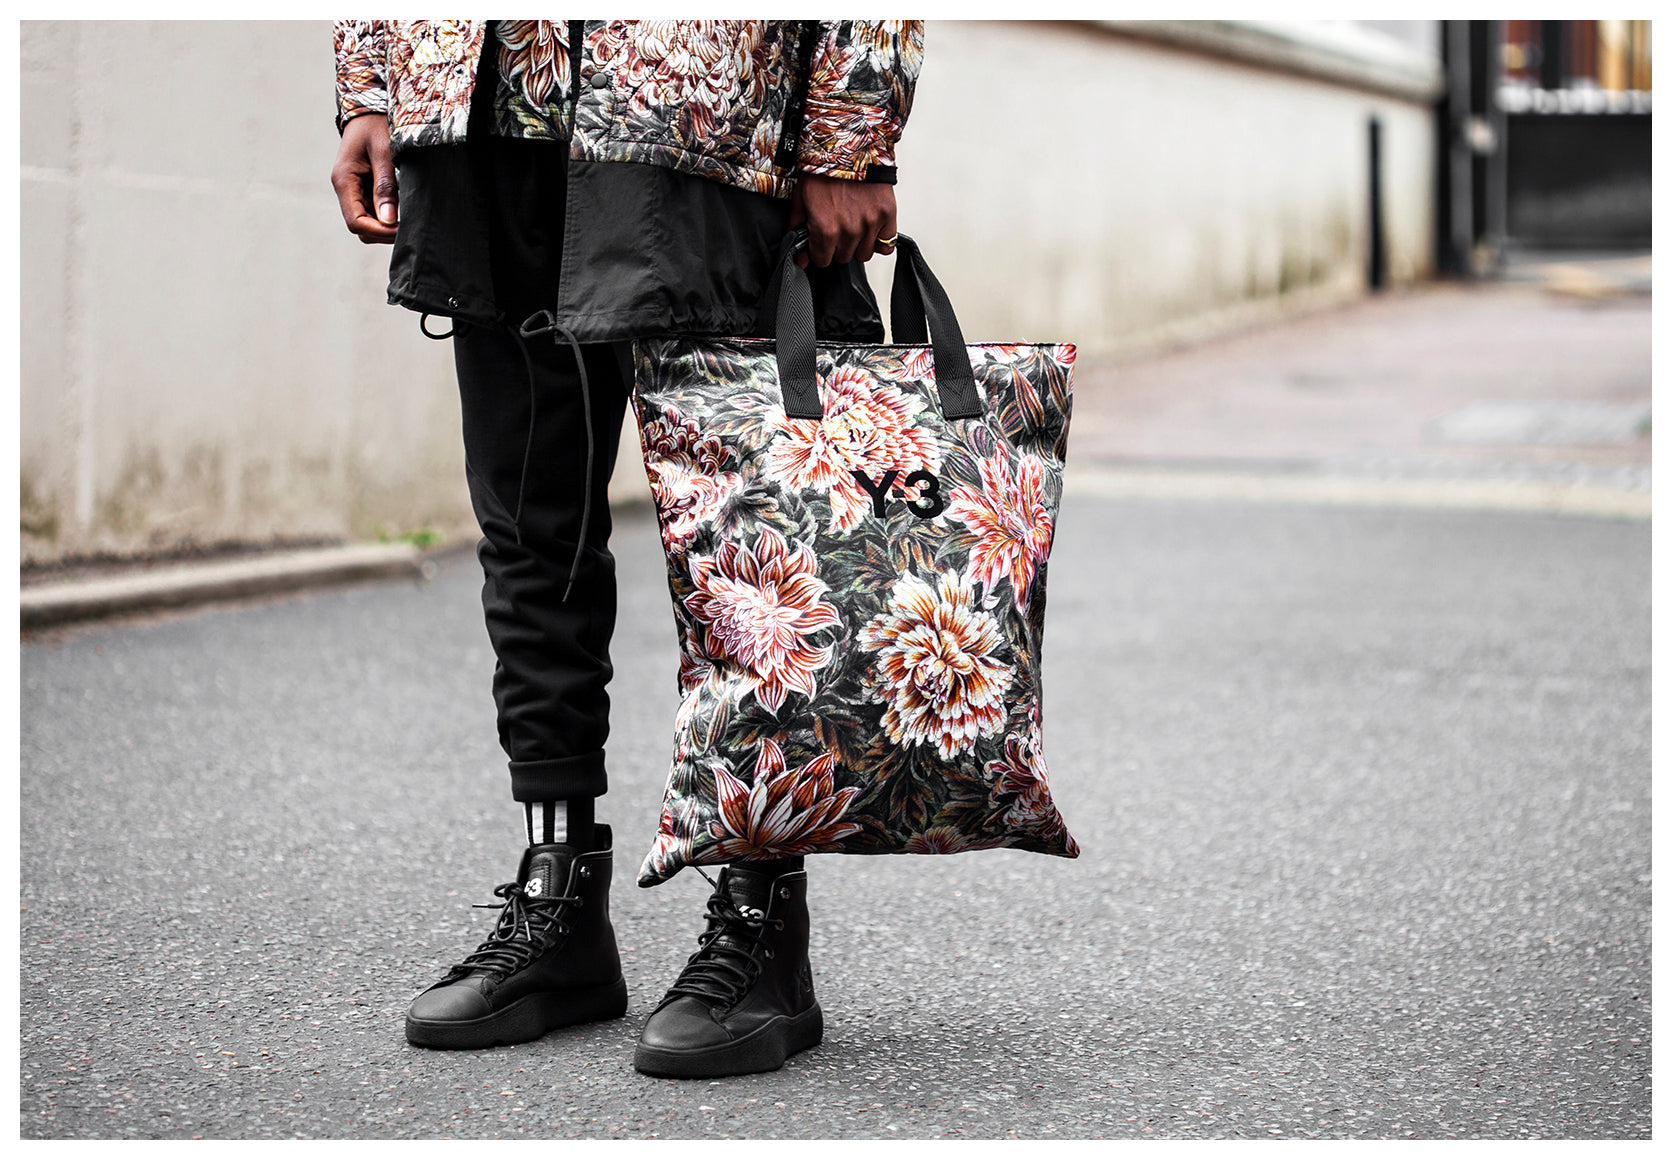 Close up detailed shot of the Floral Y-3 Tote Bag